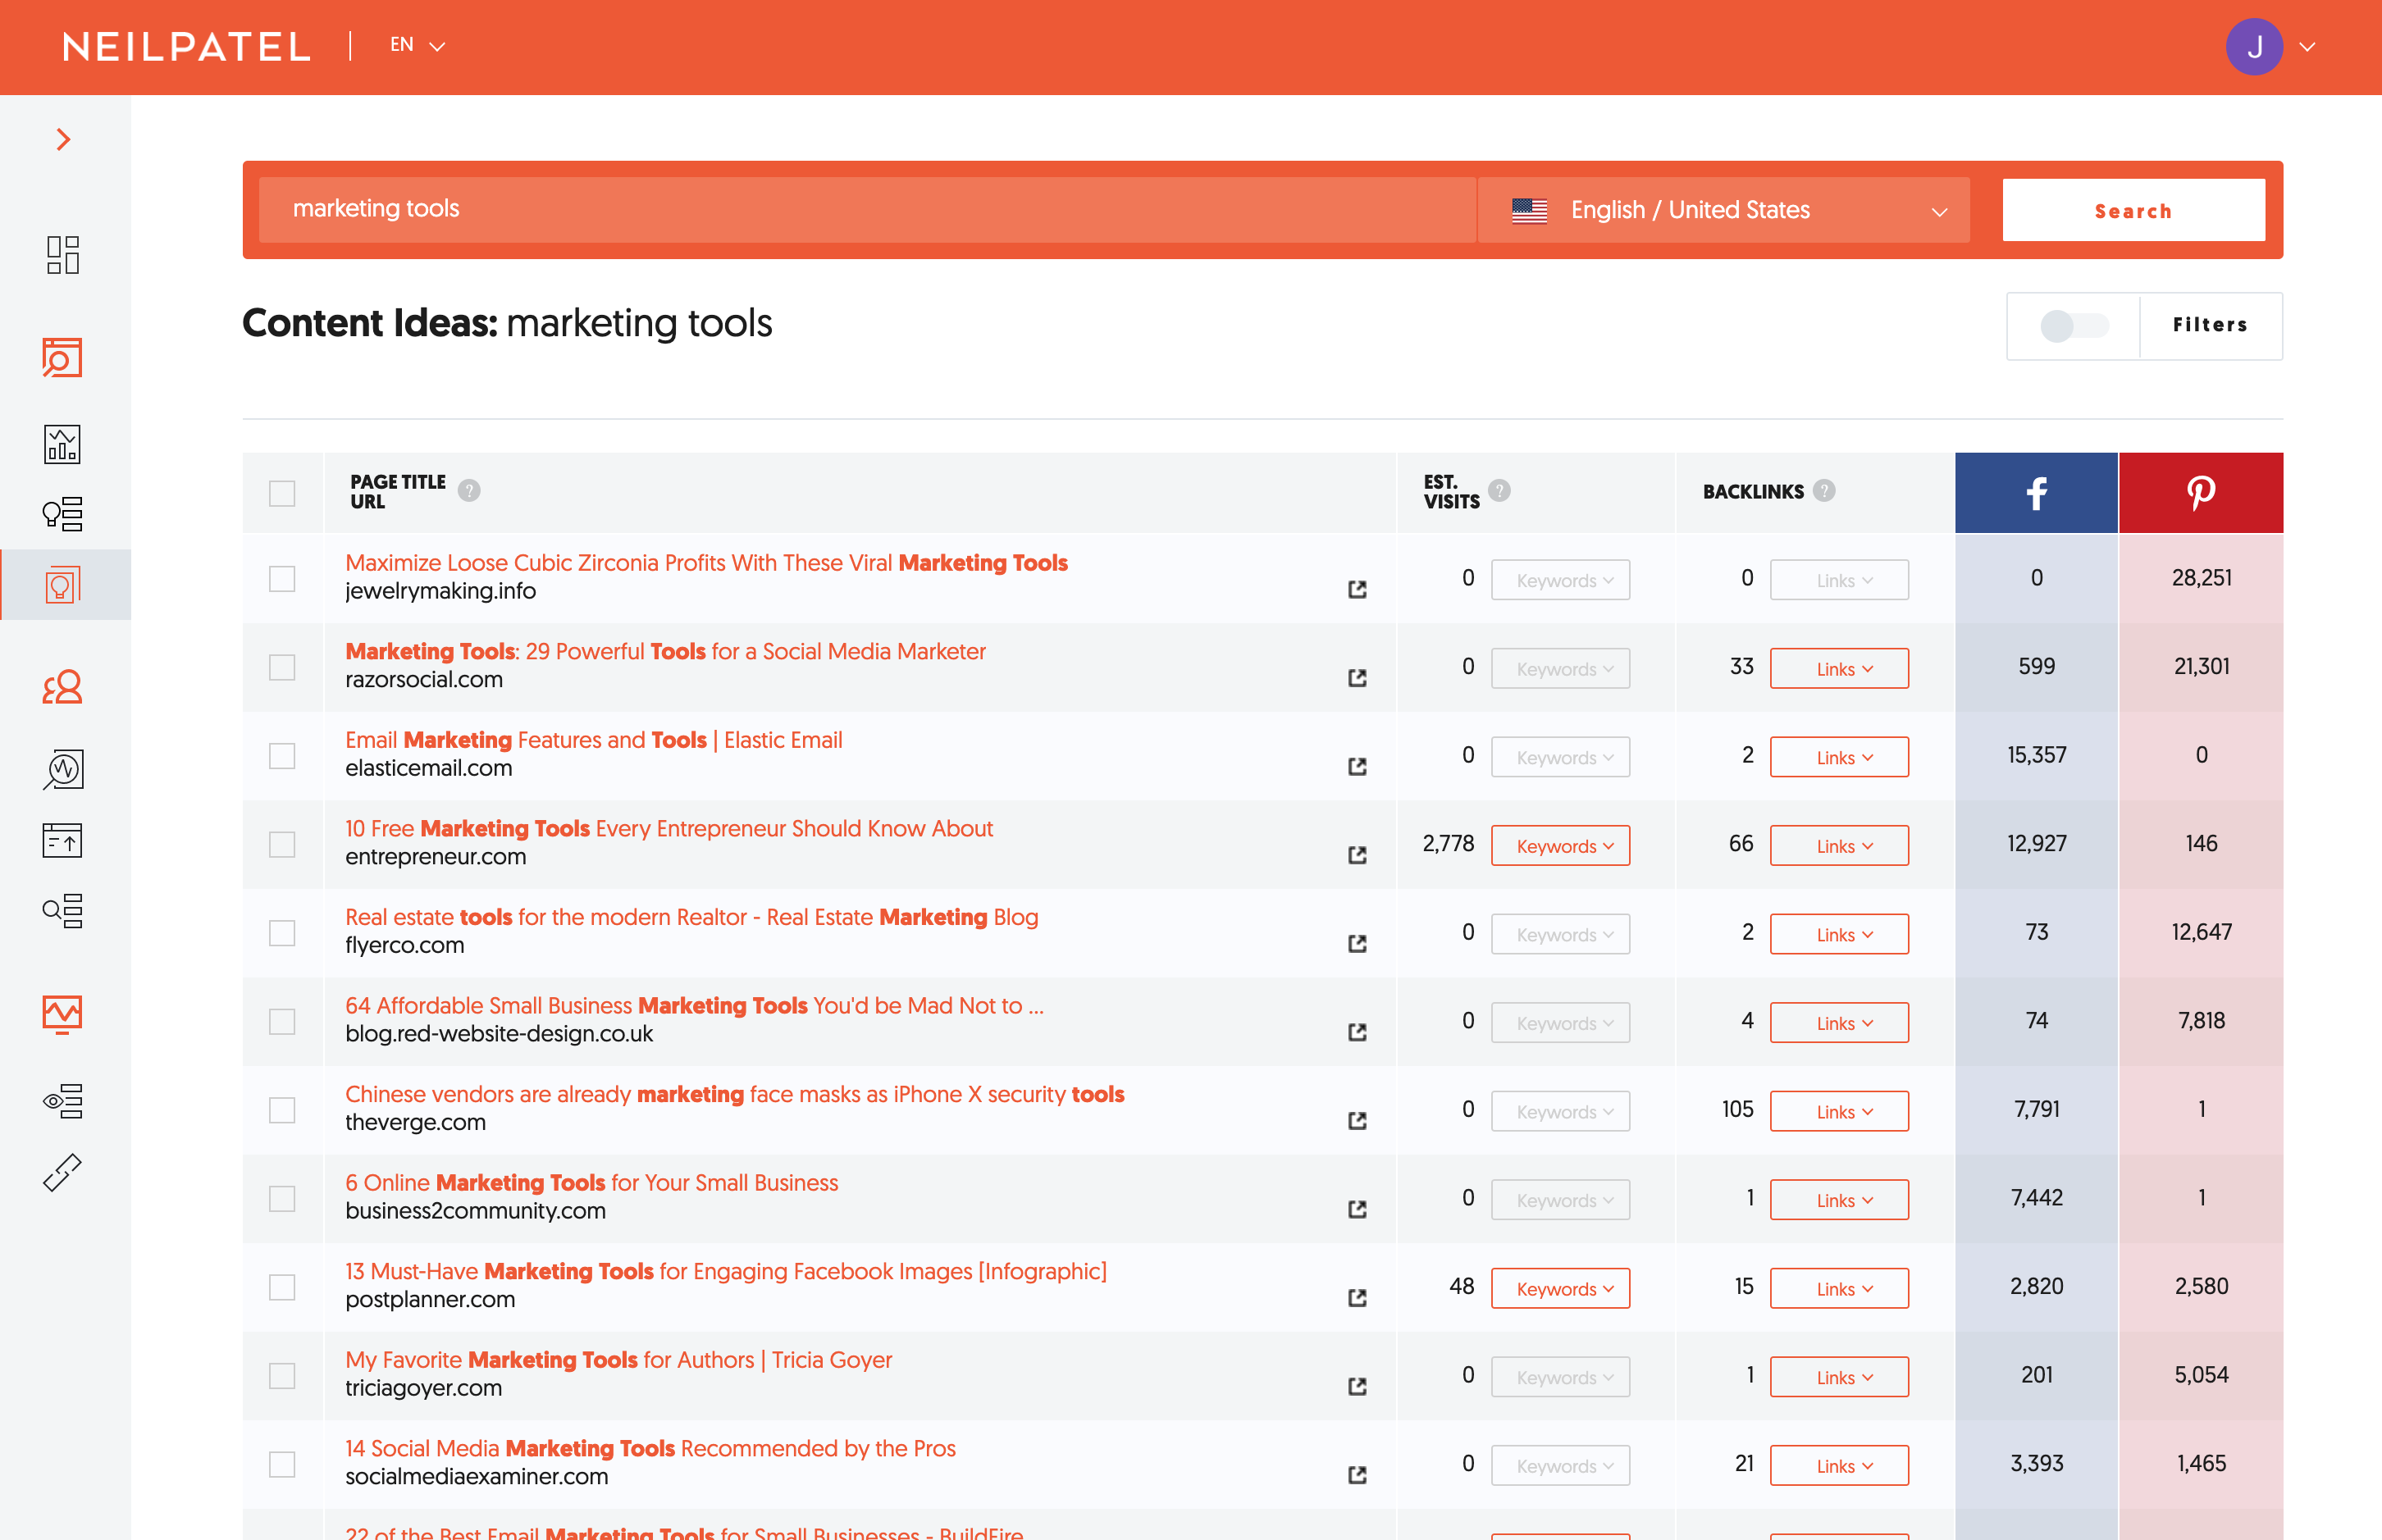 Get new content ideas with ubersuggest based on keywords